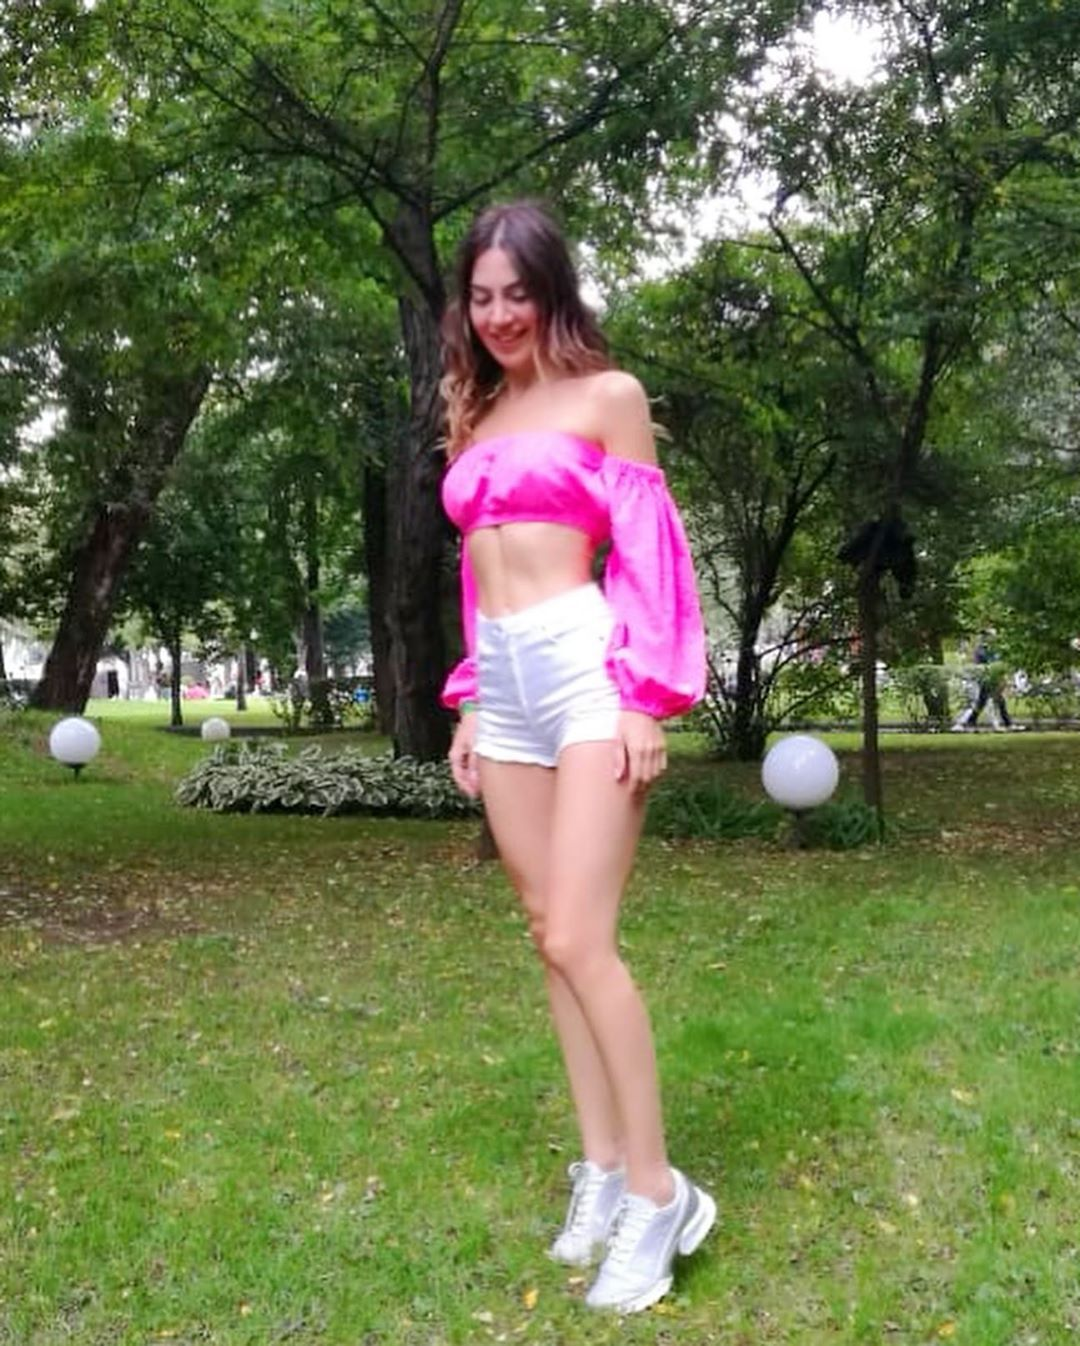 Bright mood #bright #girl #weekend #fit #fitness #fitnessmodel #neon #...